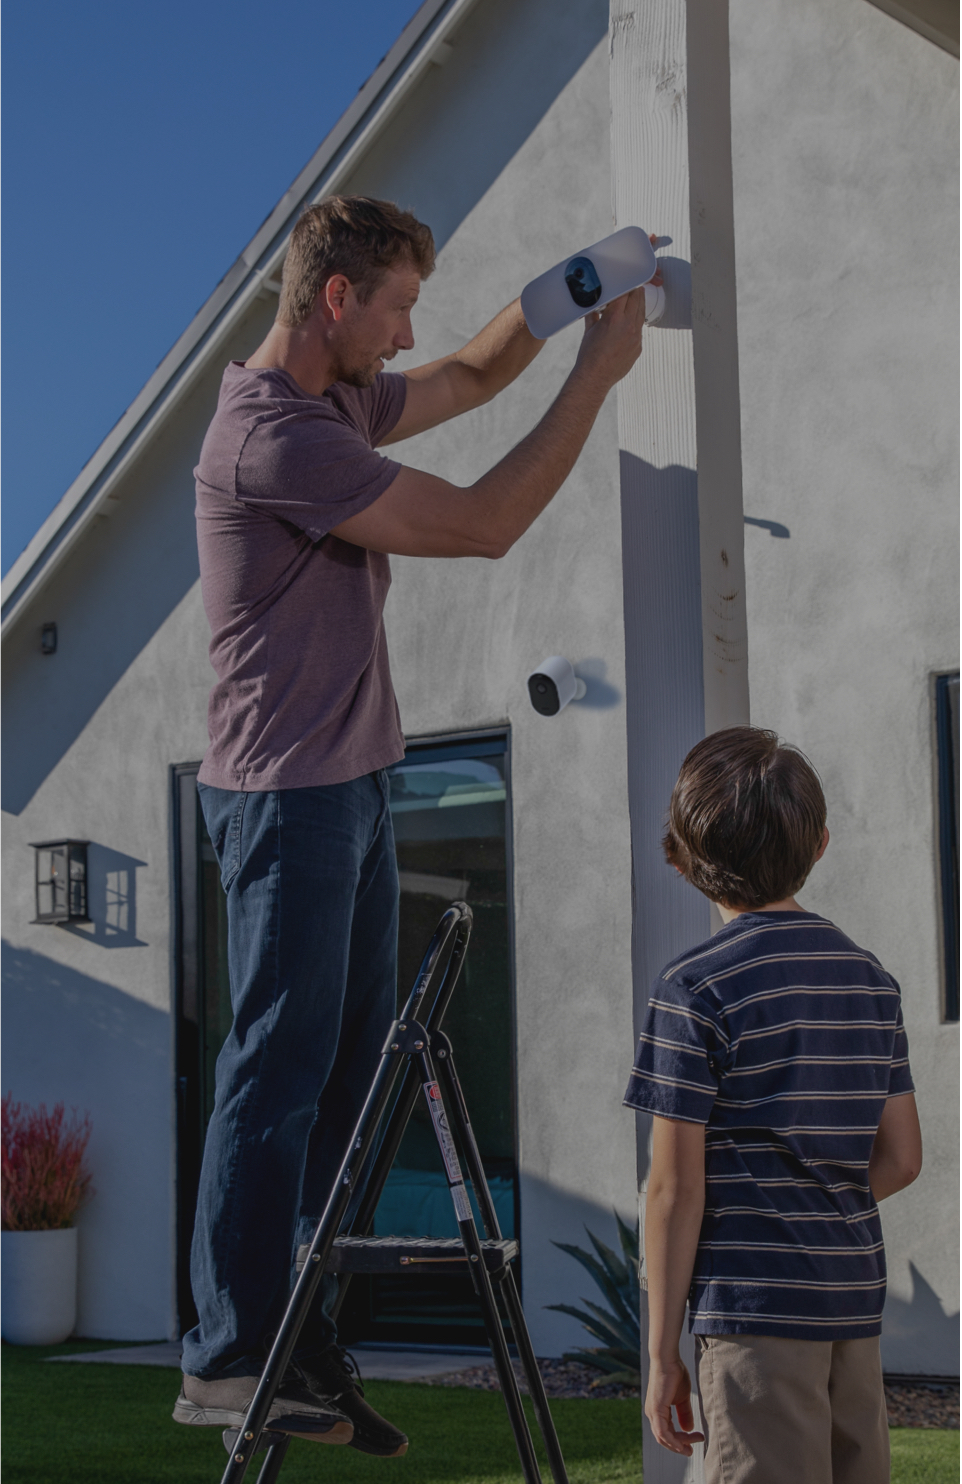 Father and son in backyard with Arlo Pro 3 Floodlight